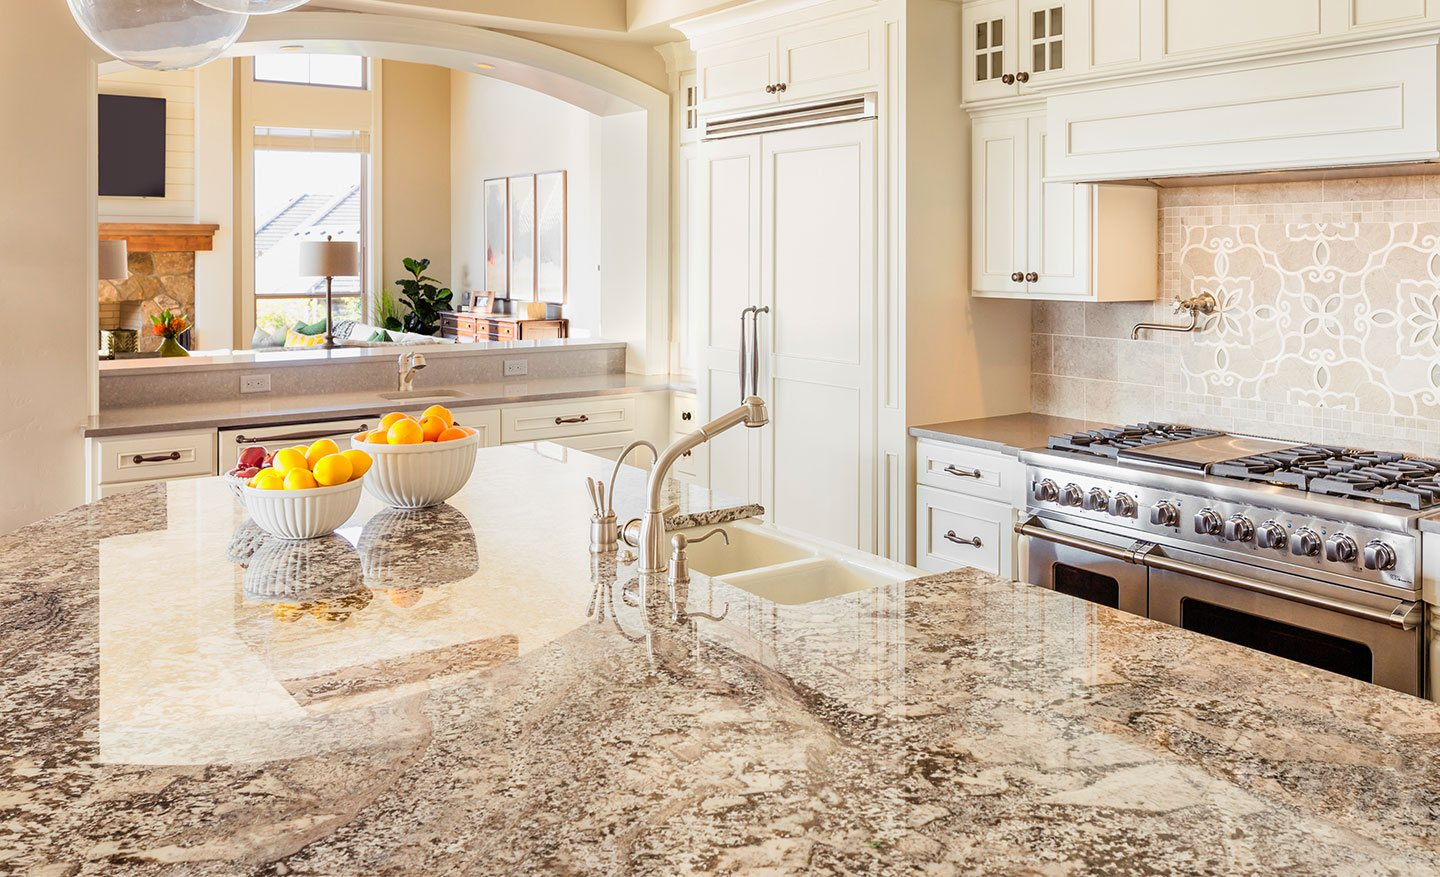 25 beautiful granite countertops ideas and designs Granite kitchen countertops pictures